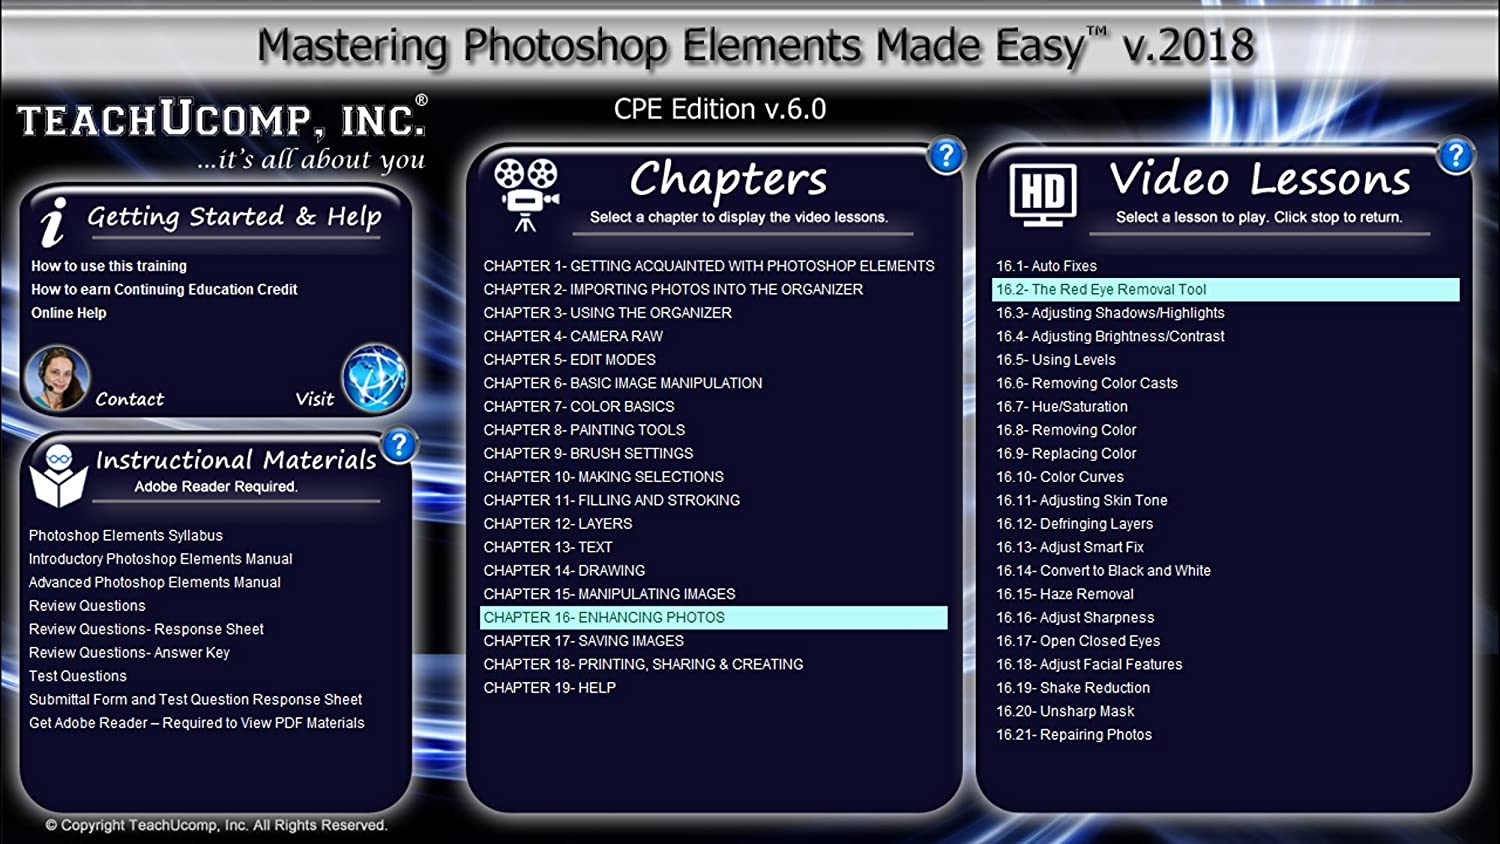 Amazon.com: Learn Photoshop Elements 2018 DELUXE CPE Training Tutorial  Package Video Lessons, PDF Instruction Manuals, Printed and Laminated Quick  Reference ...